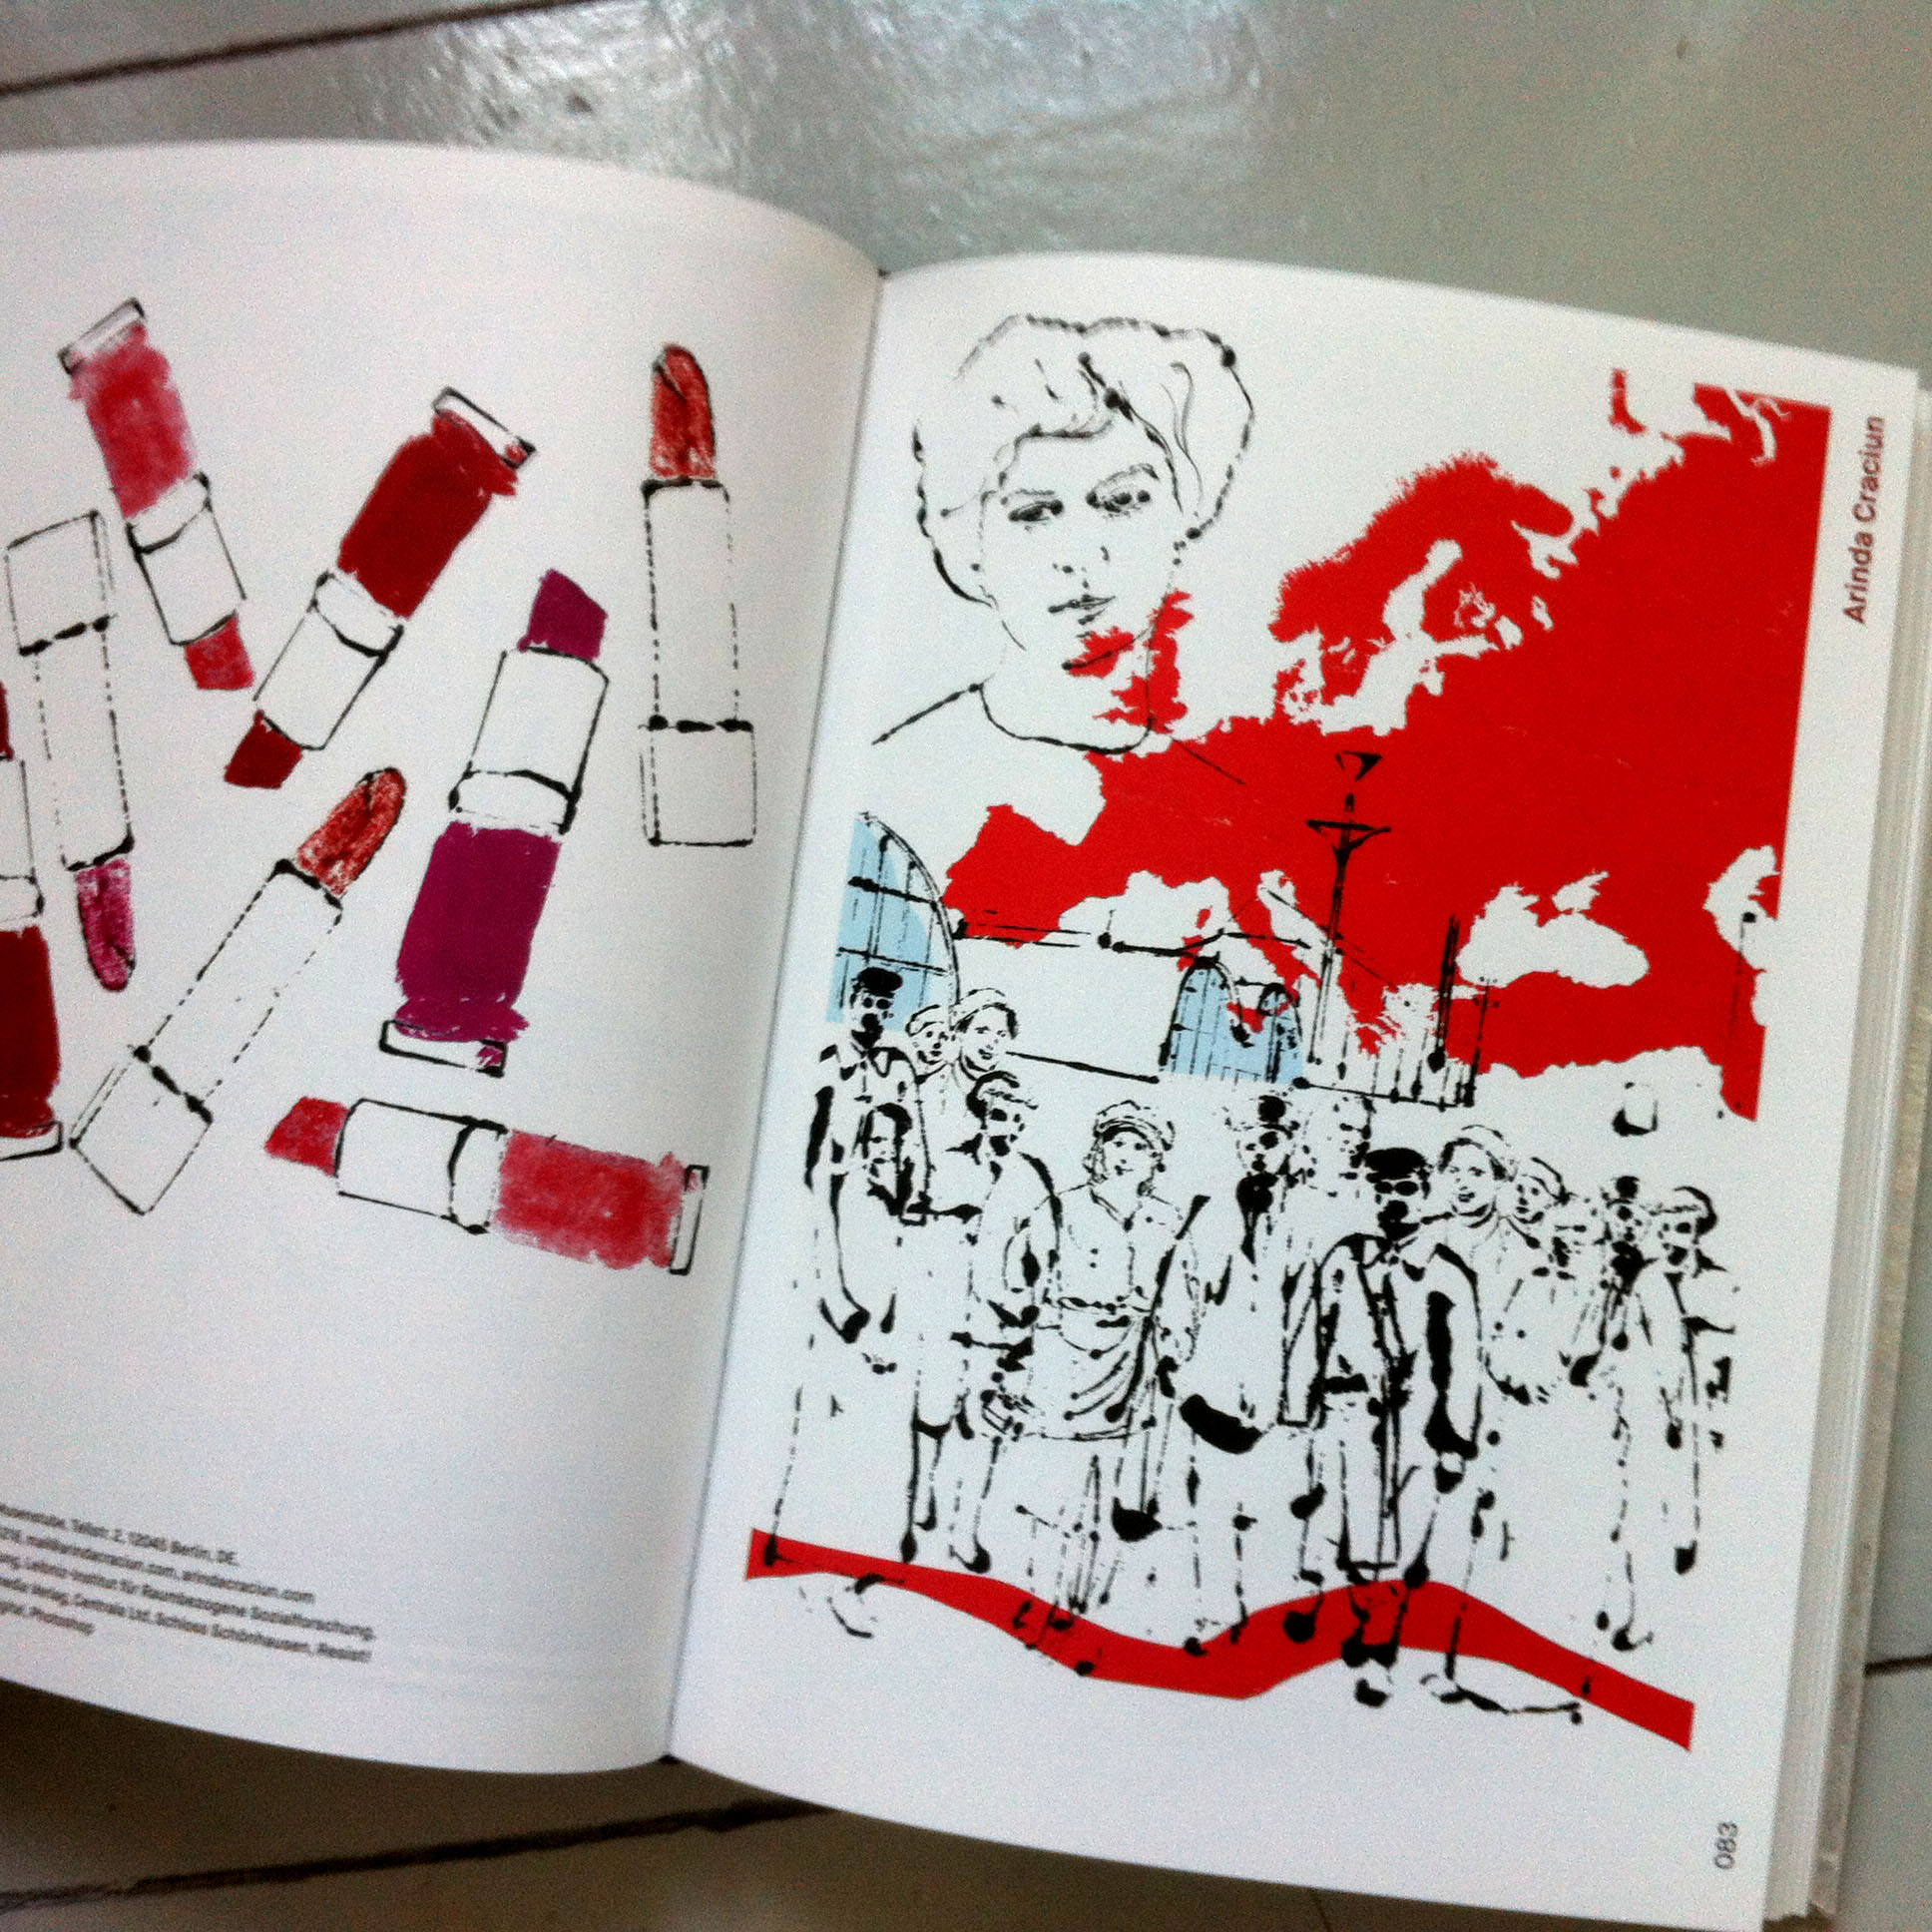 Freistil 6 – The Book of Illustrators